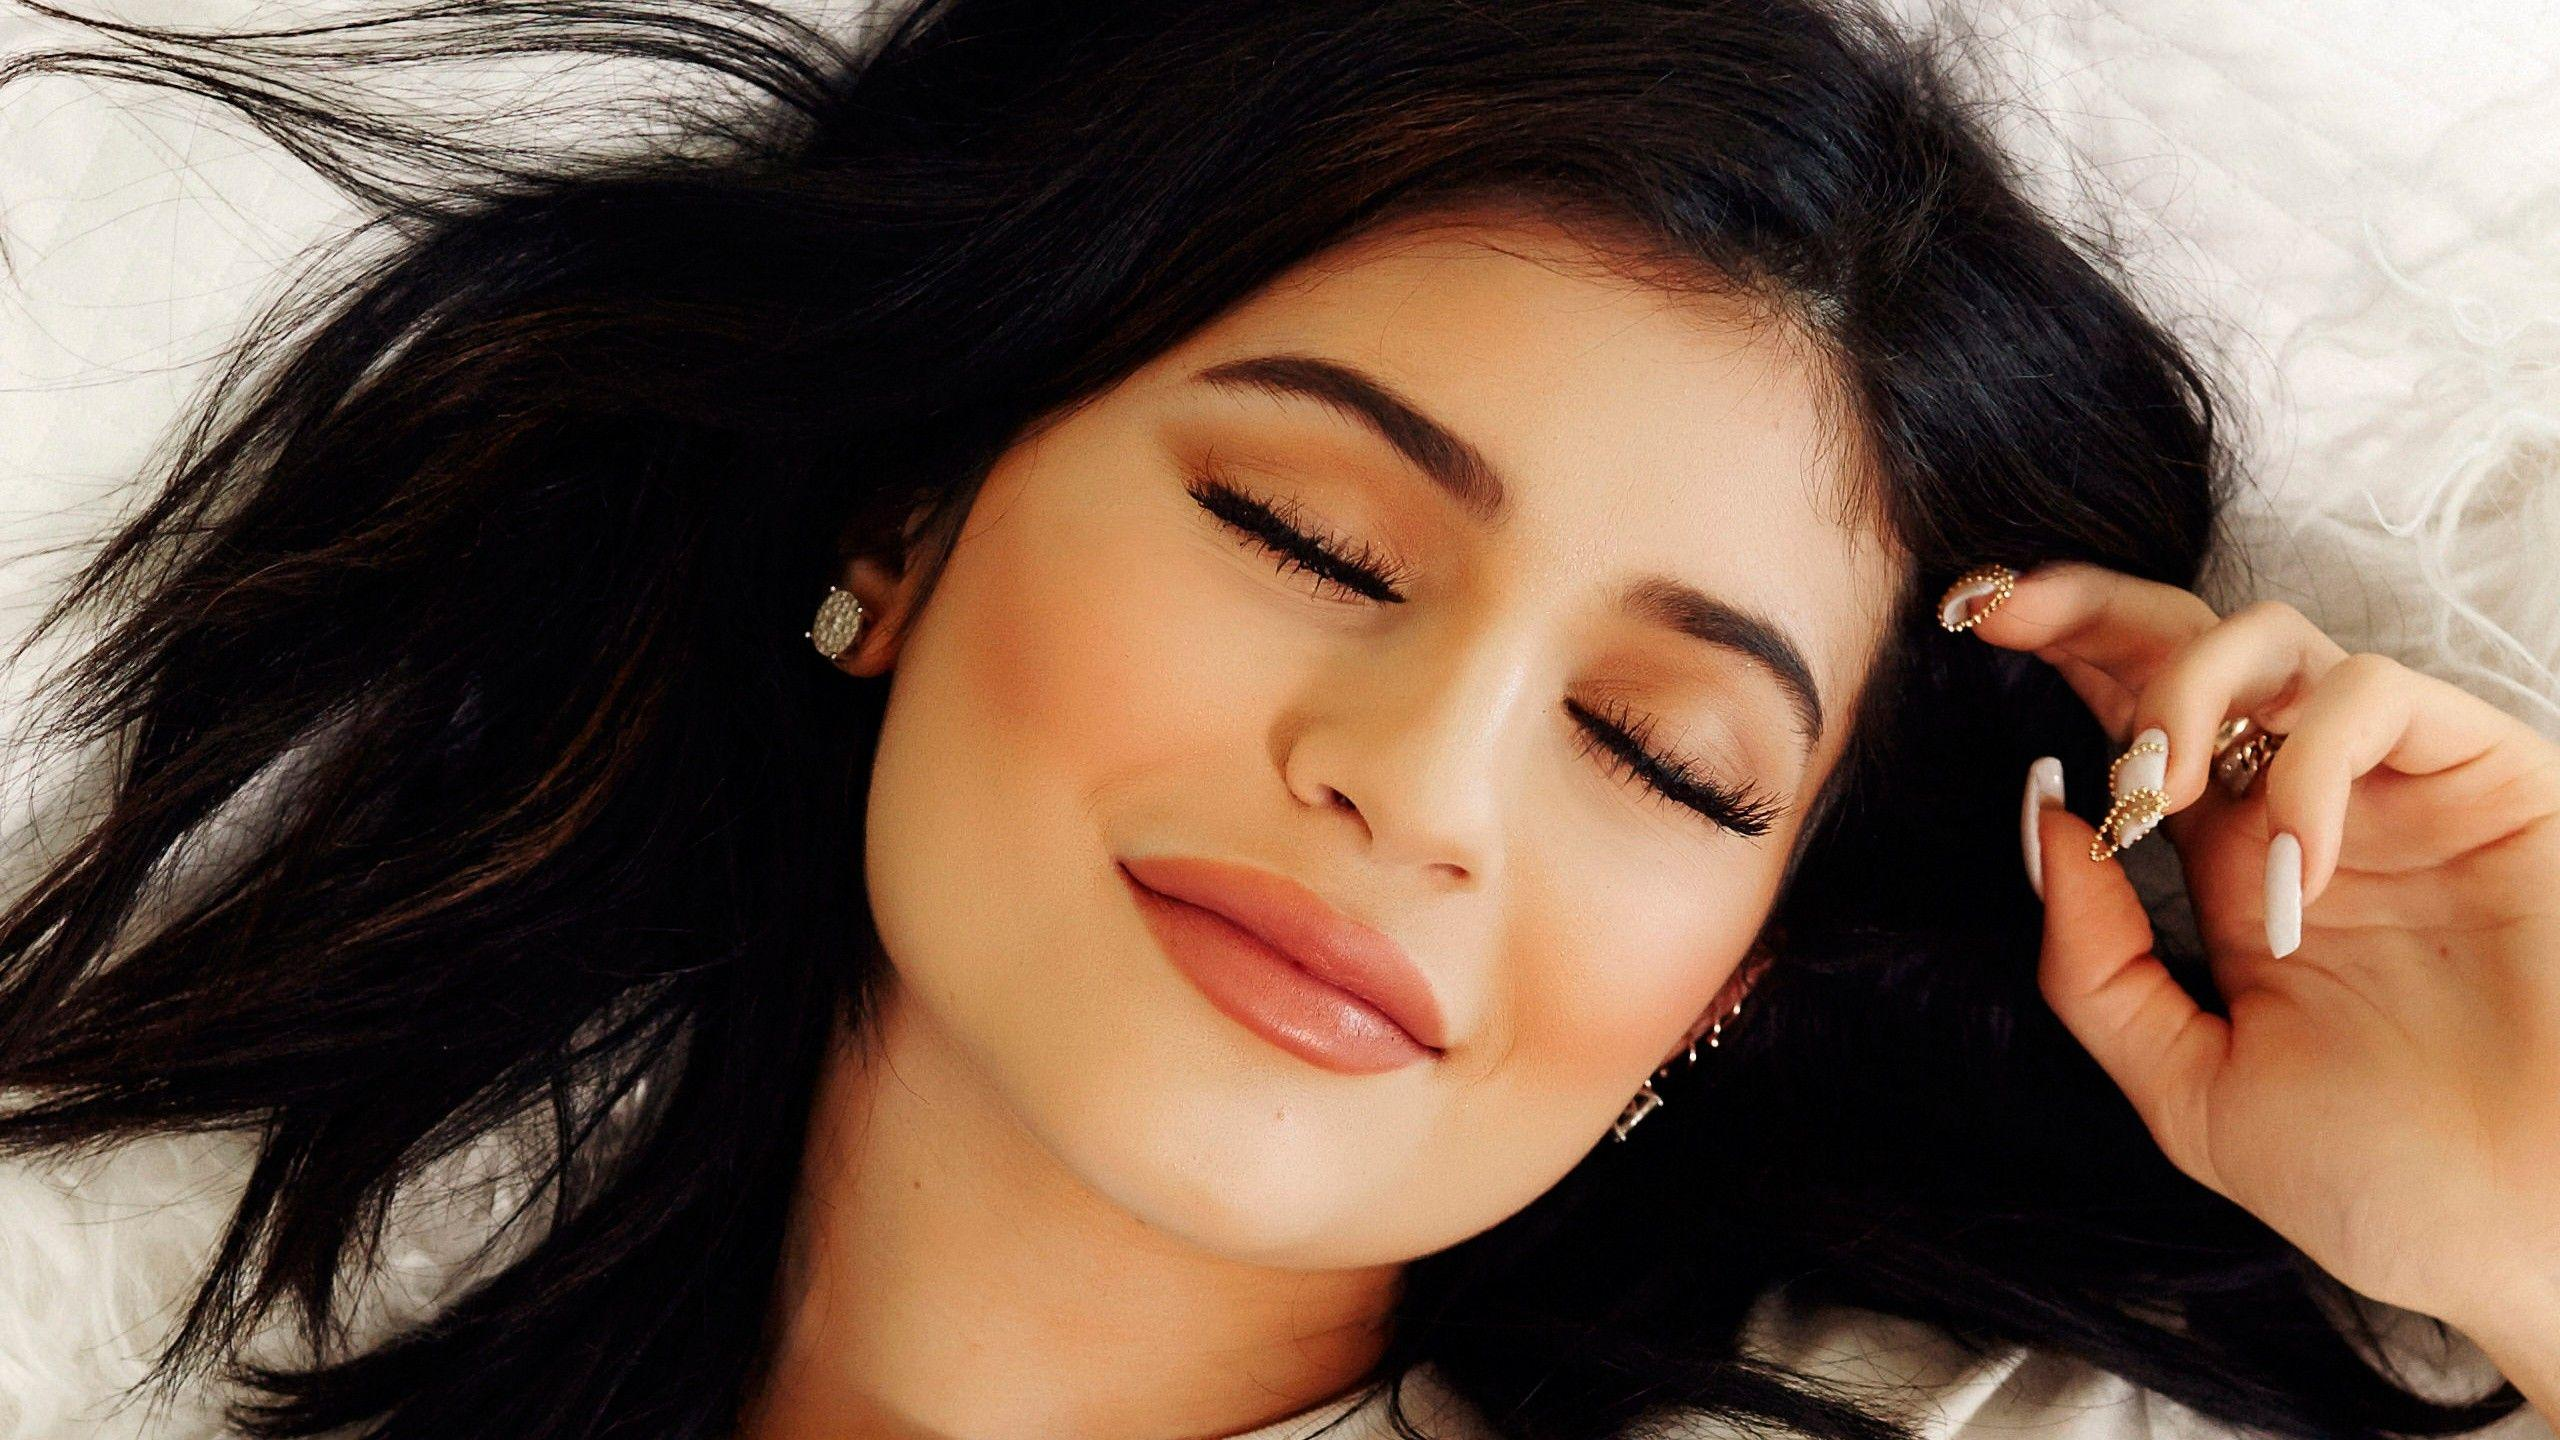 Kylie Jenner 2018 Wallpapers - Wallpaper Cave